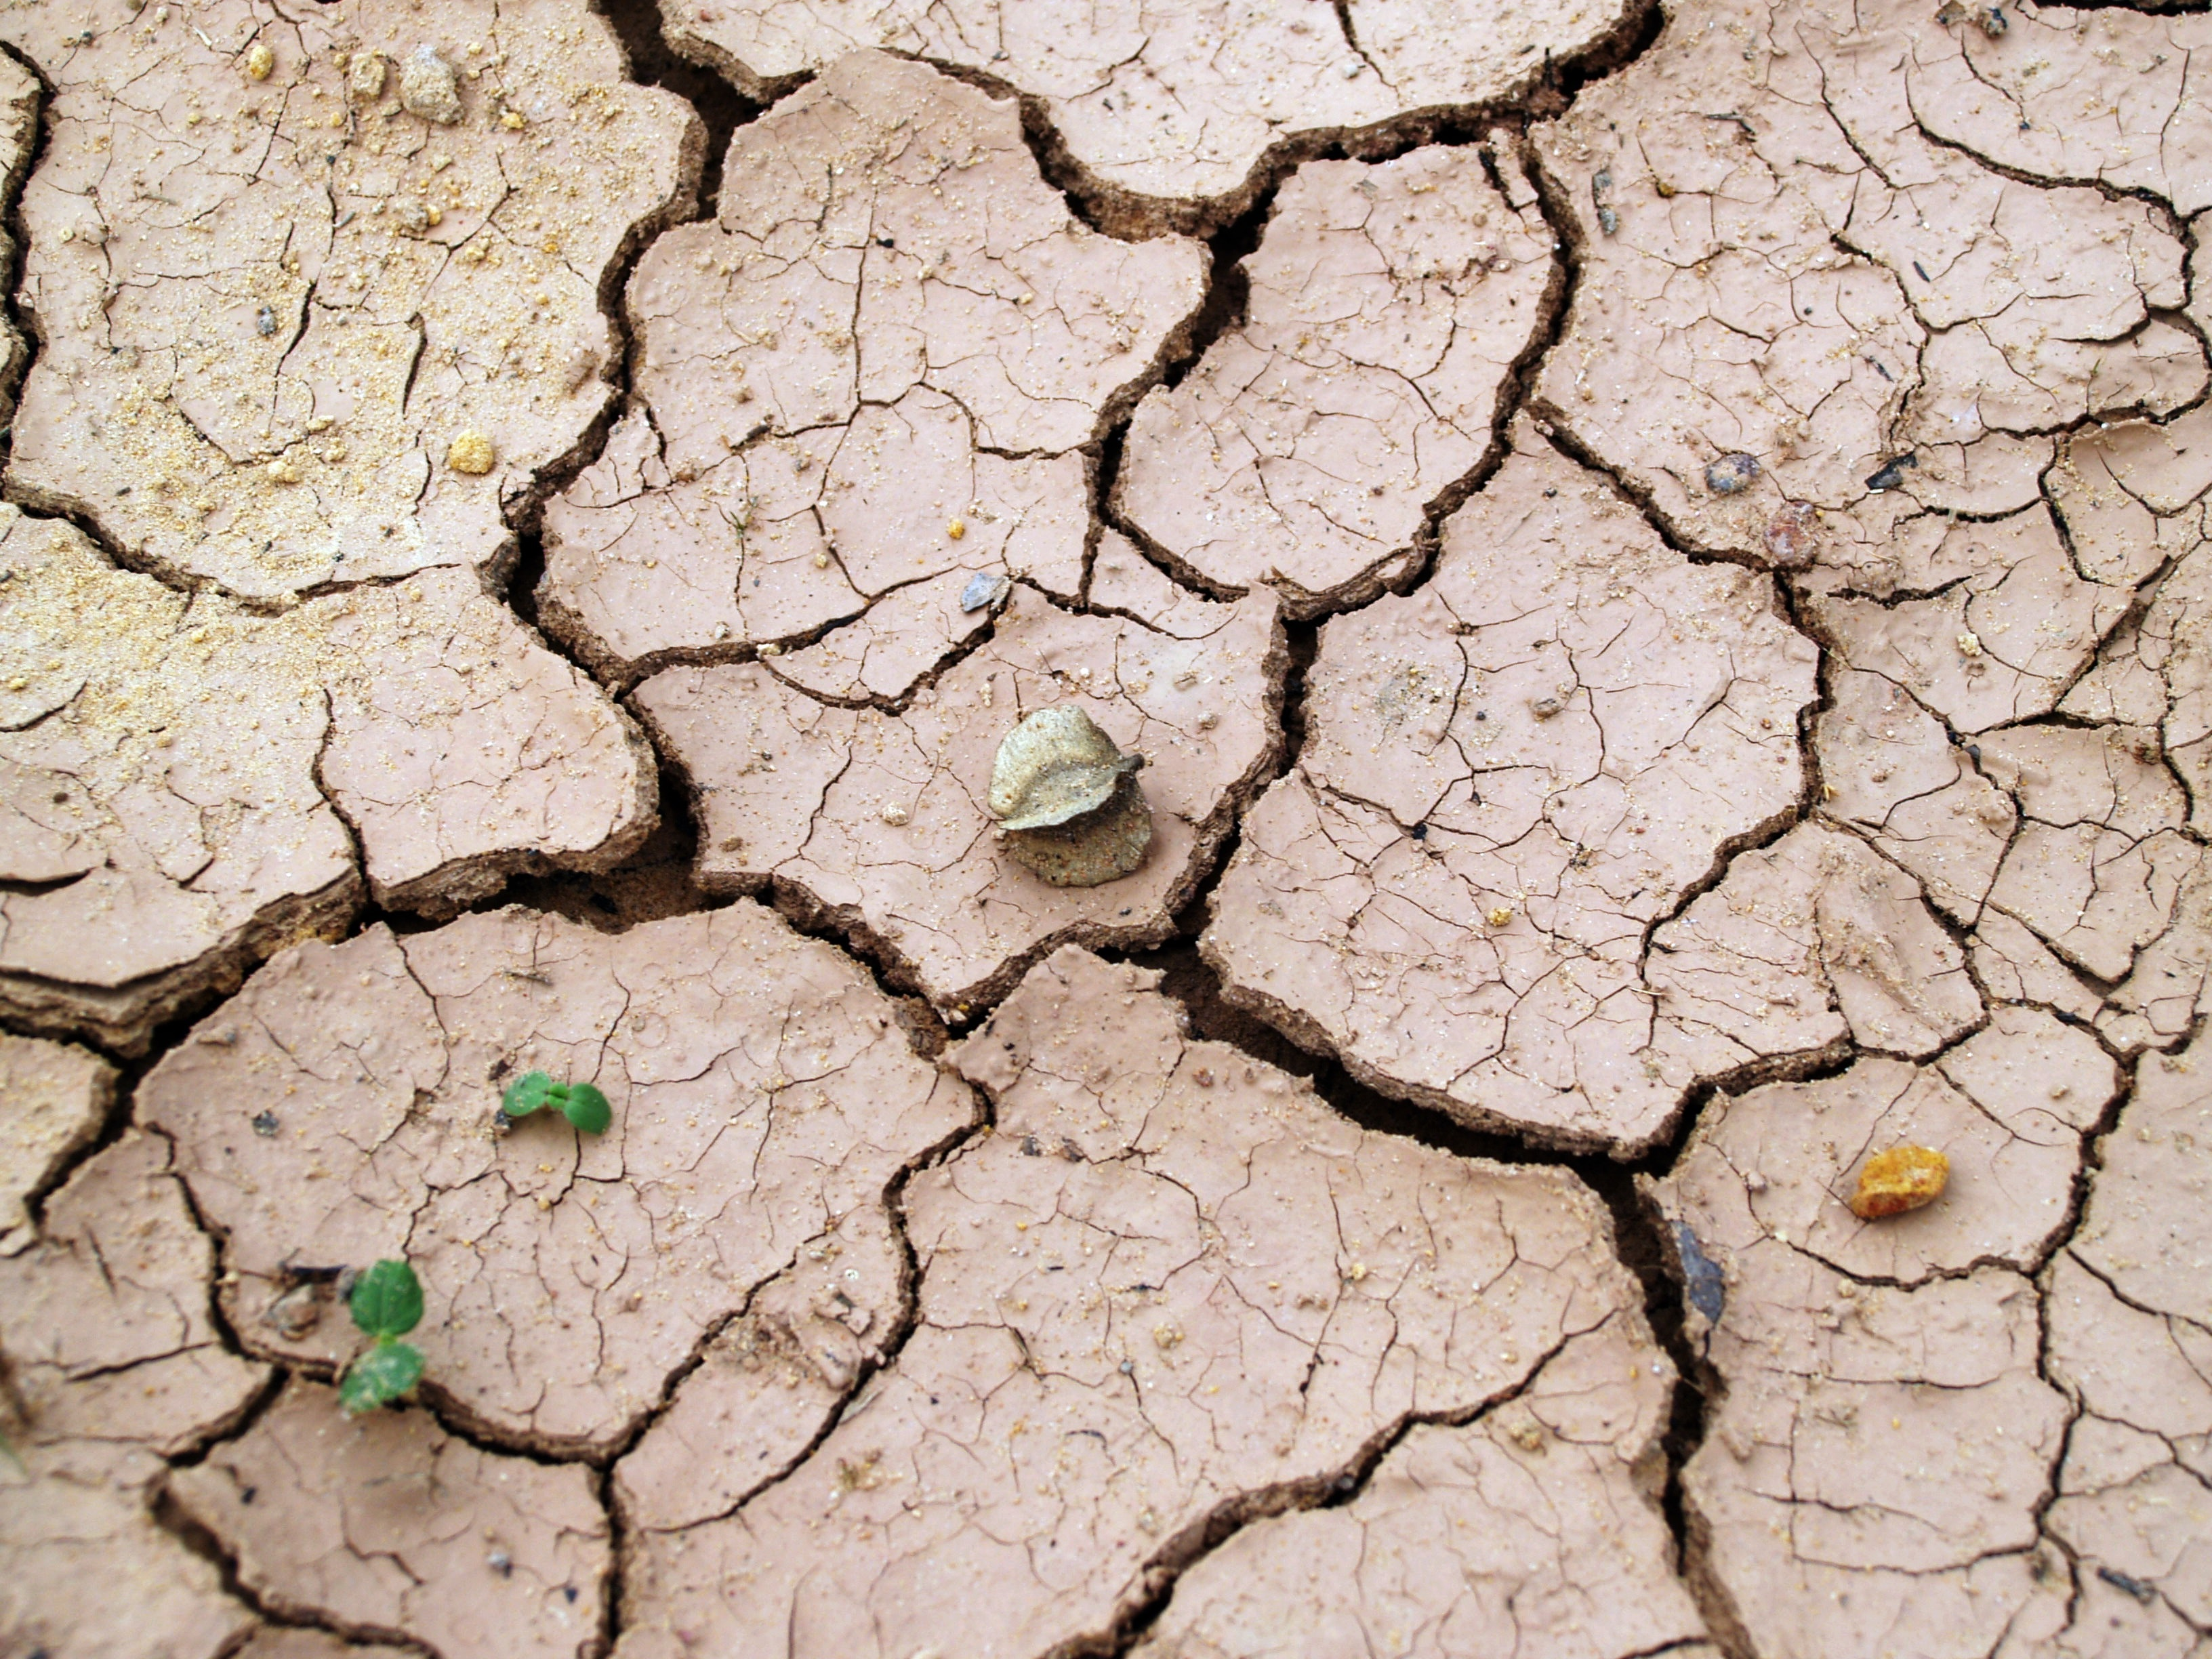 Image of cracks in the clay ground of a desert